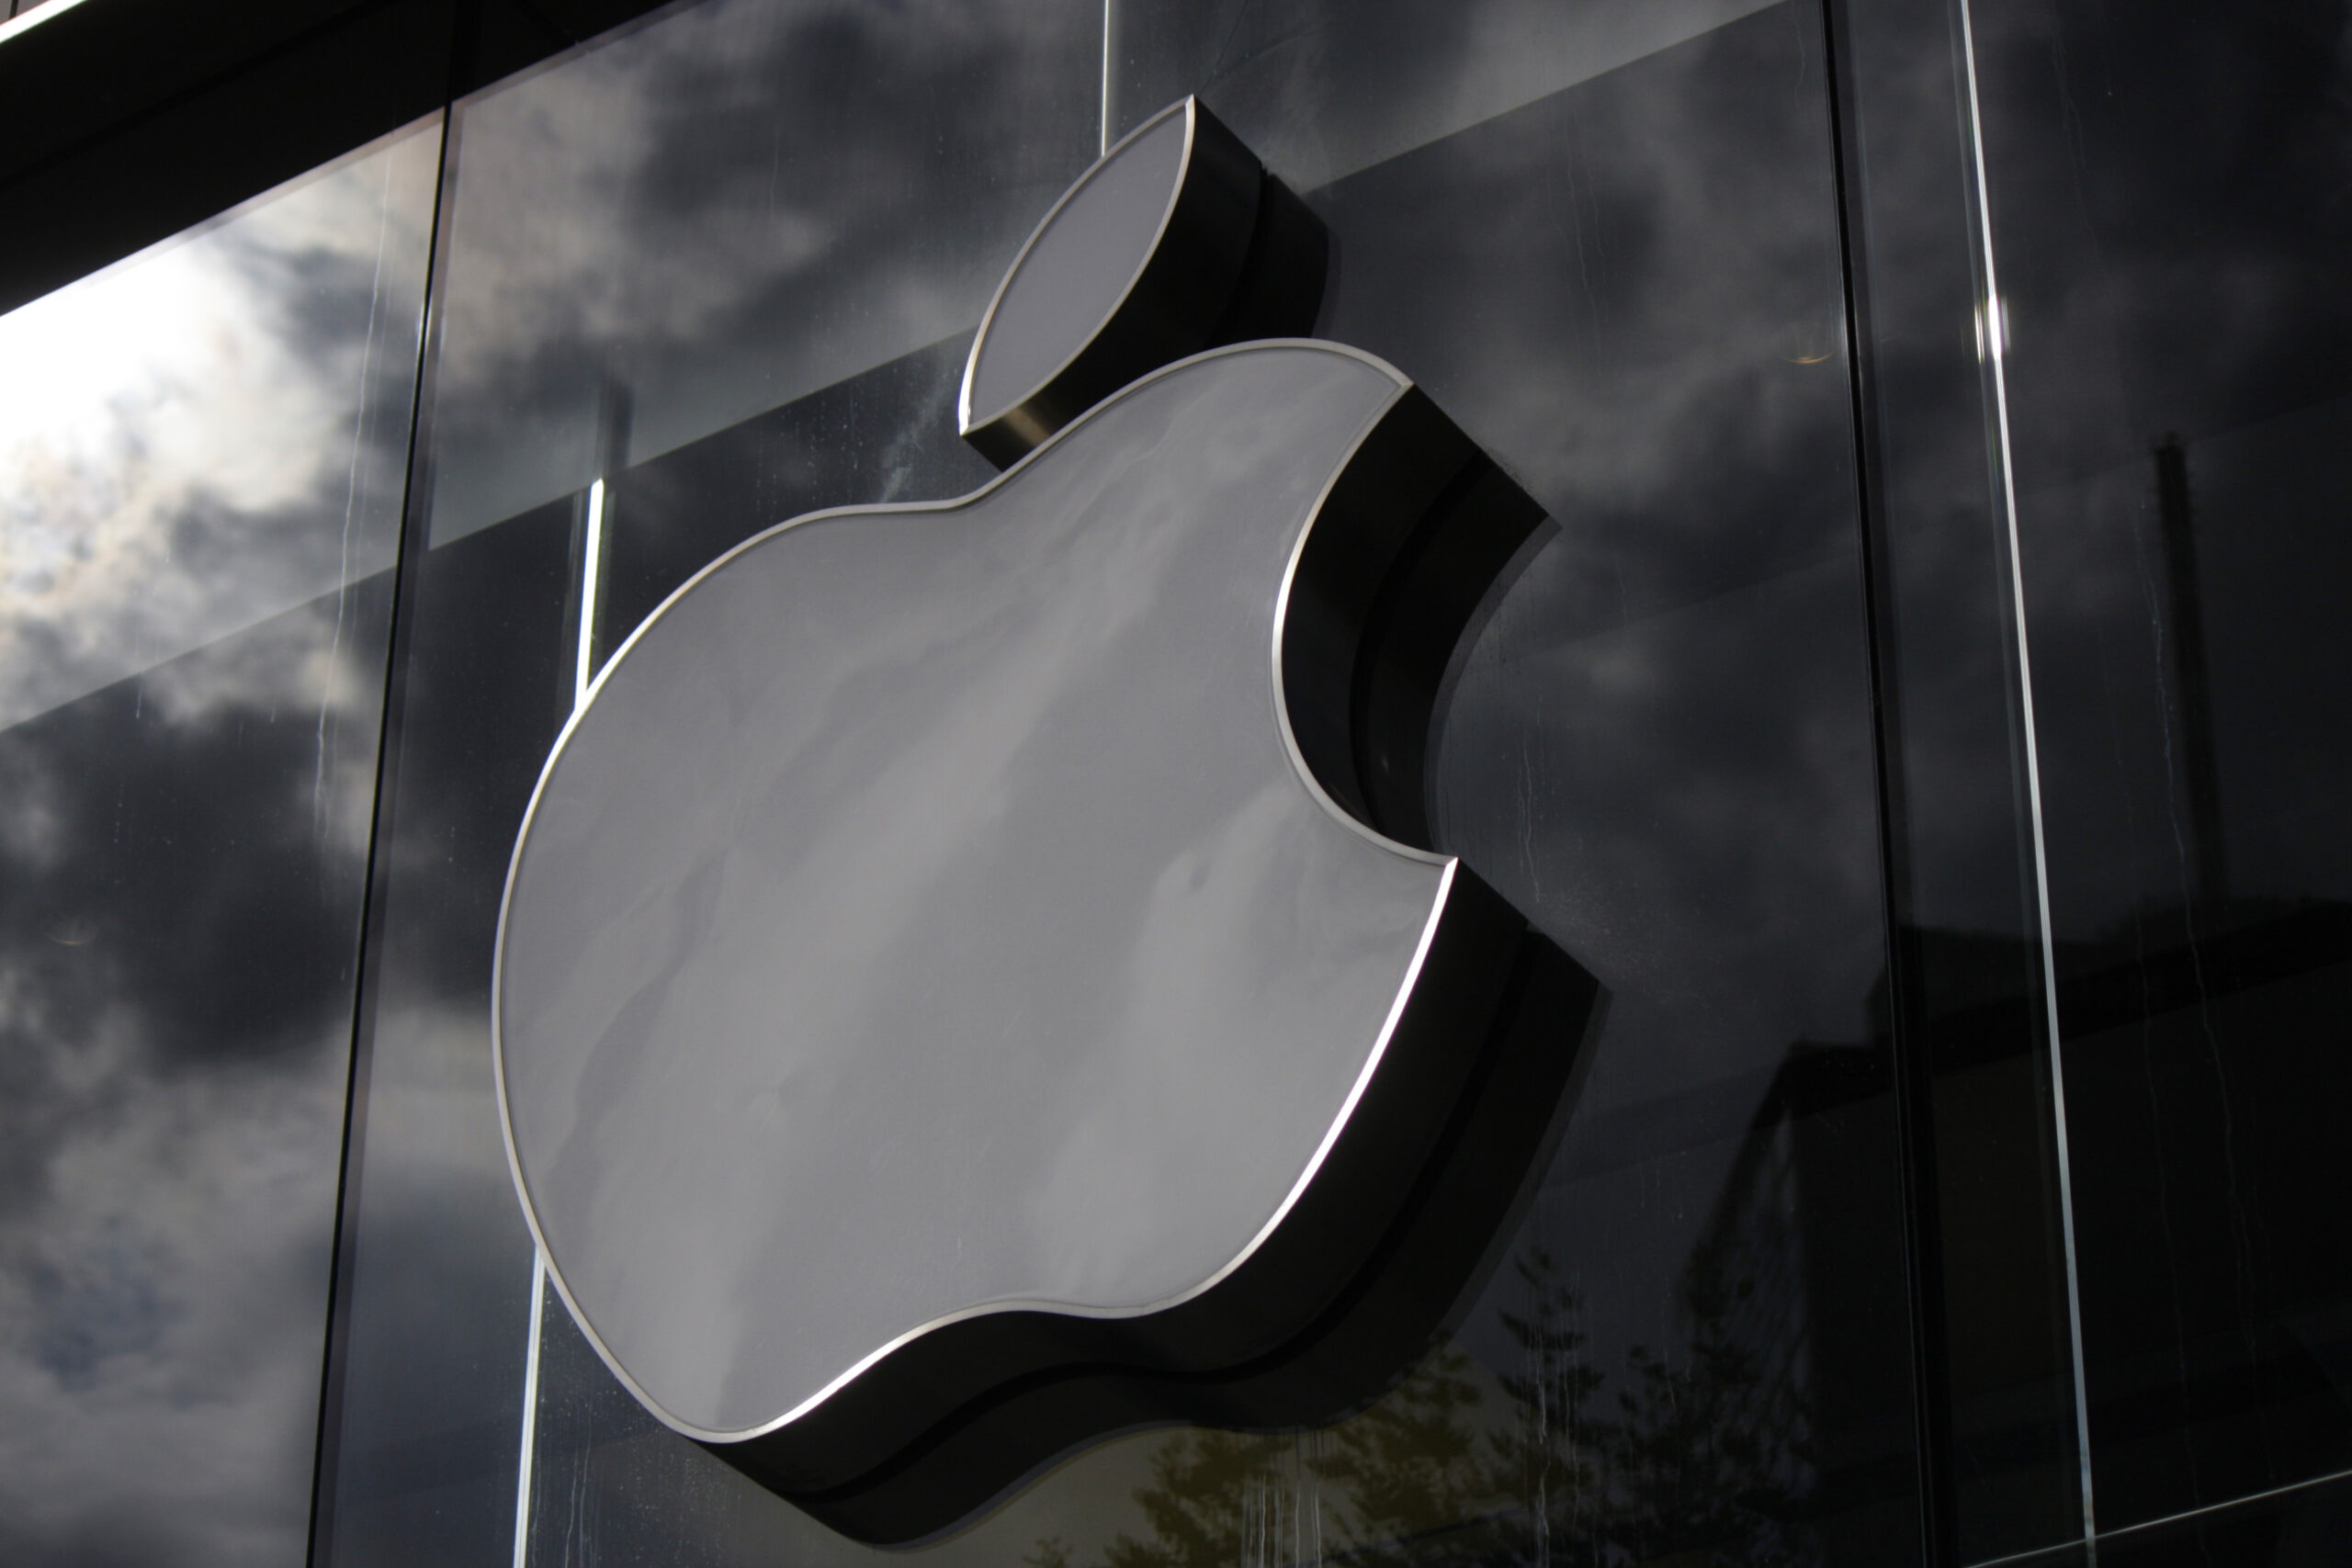 Apple talks up US data center investments as tax increases loom